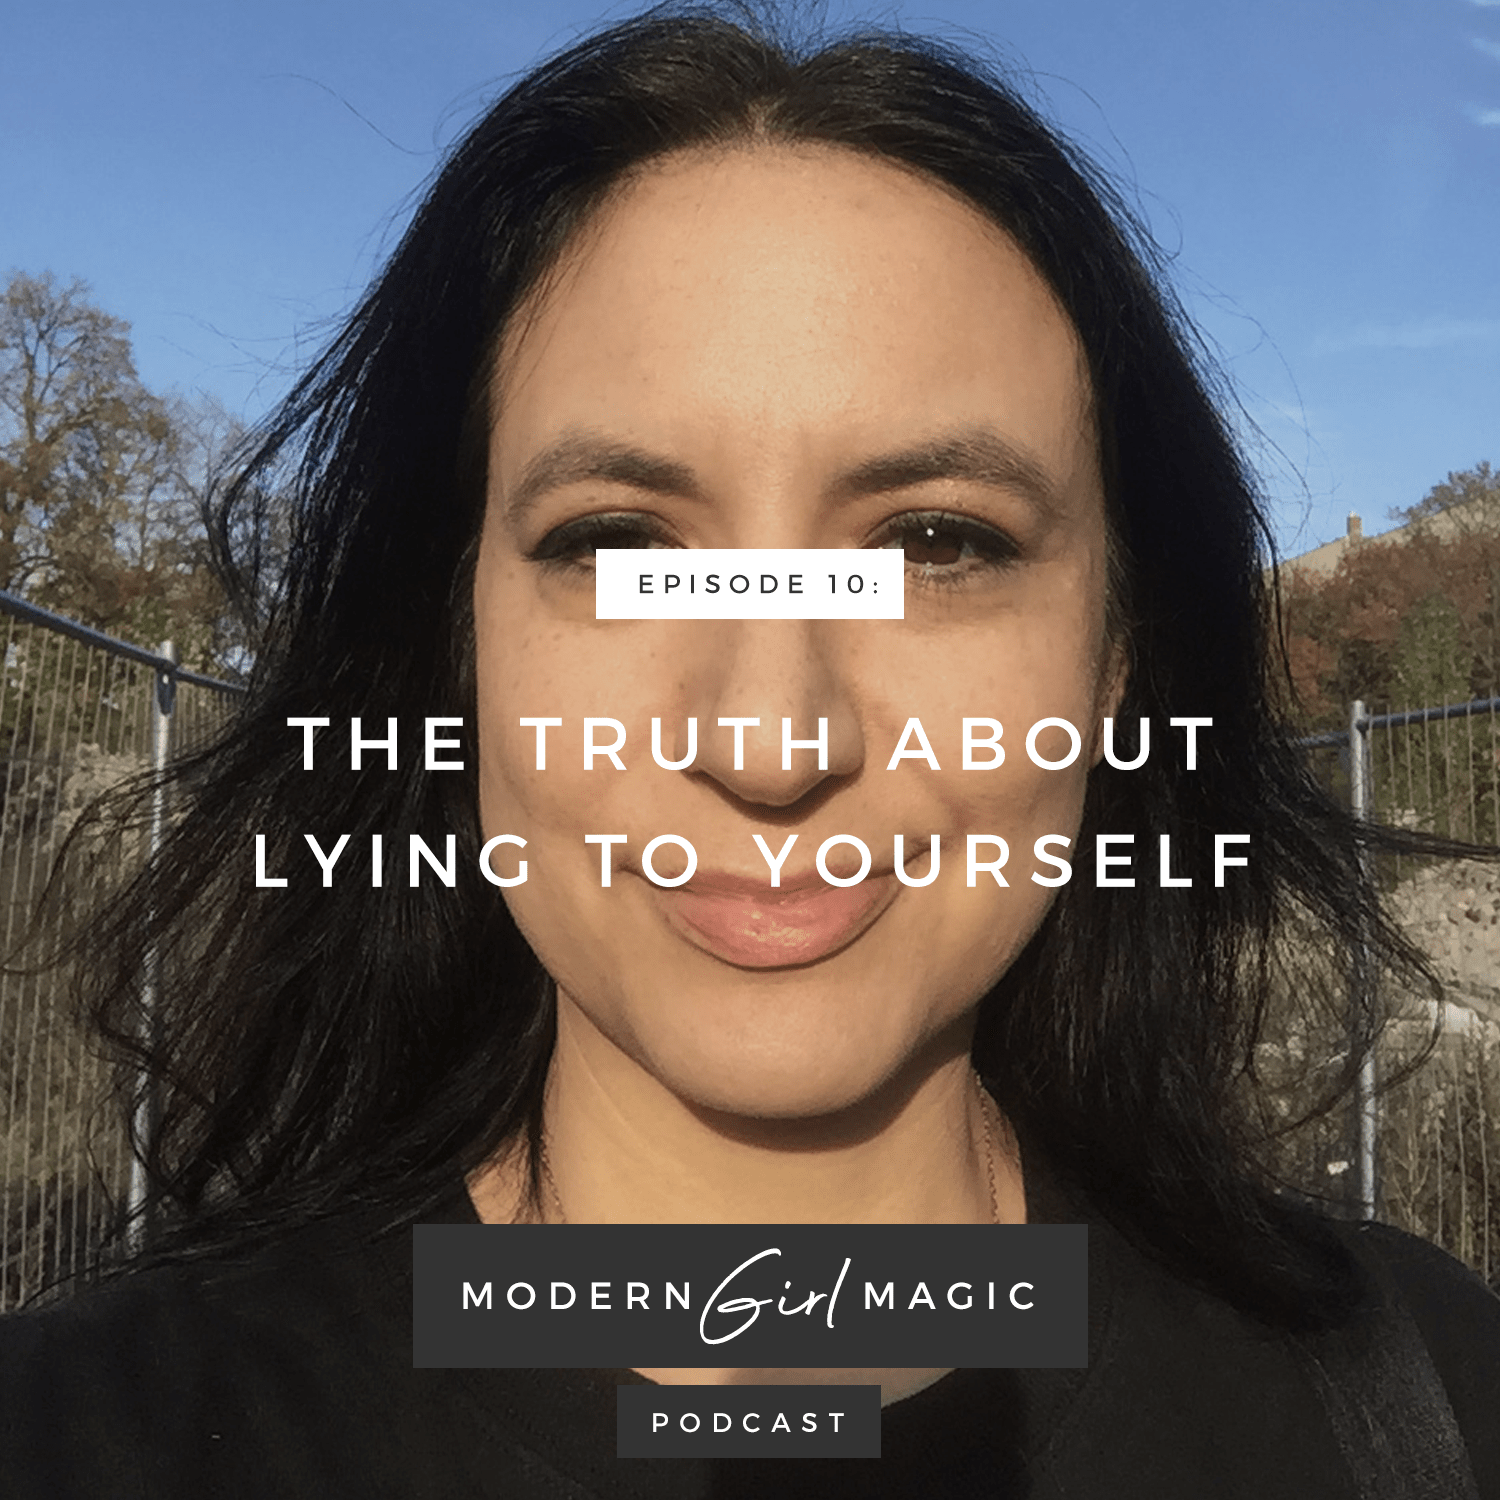 Modern Girl Magic Episode #10: The Truth About Lying To Yourself